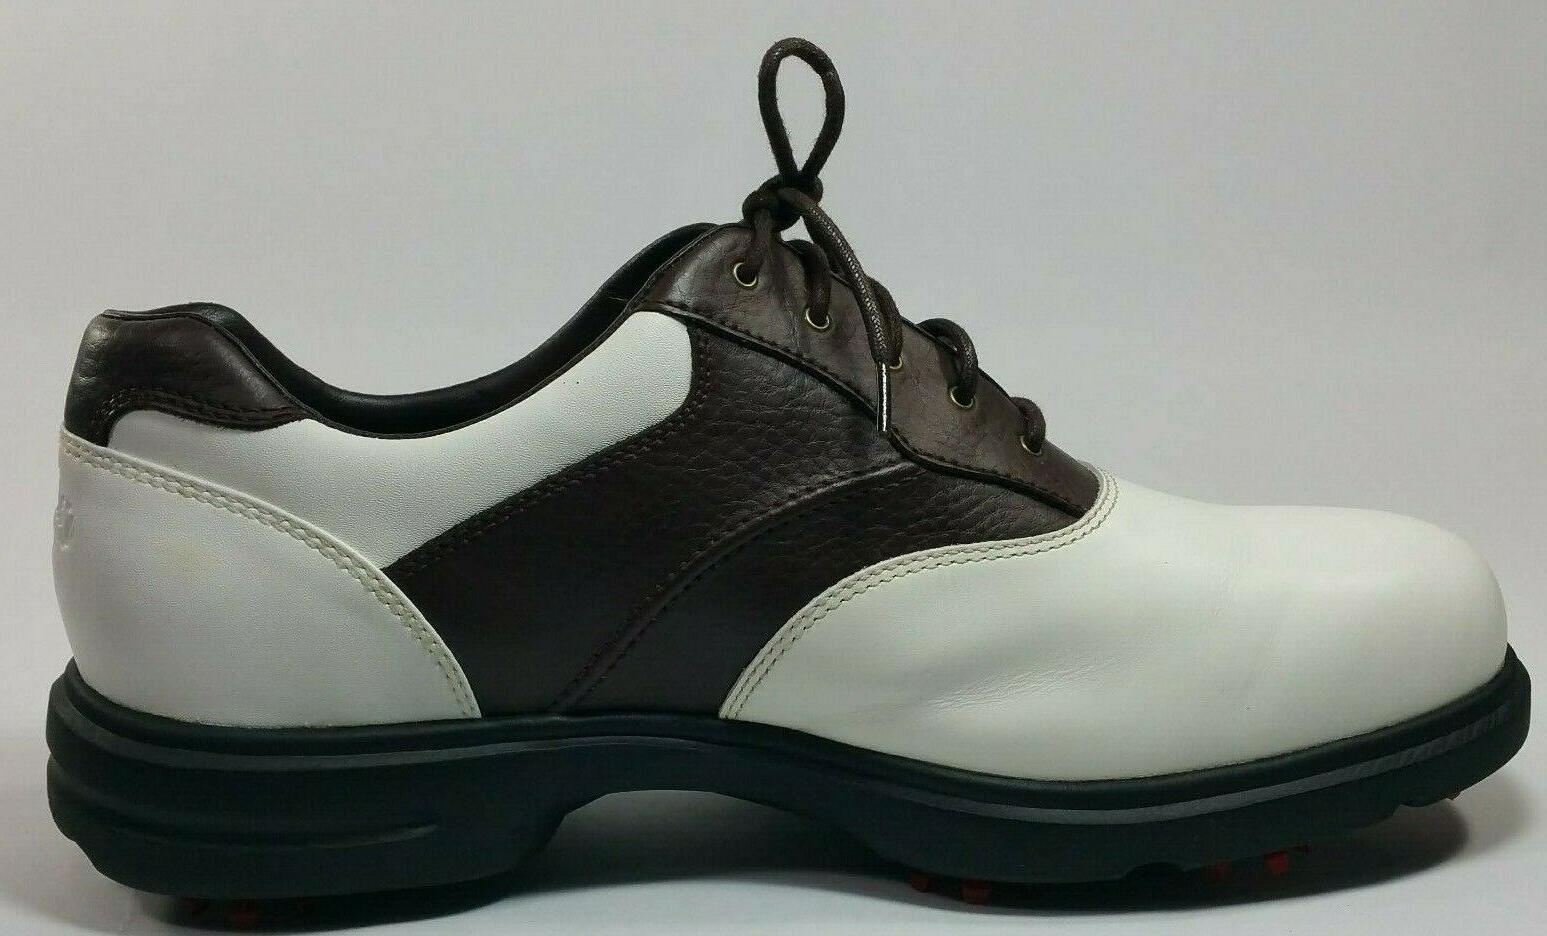 Callaway Shoes 11.5 Brown Saddle M209-18 Rubber NEW